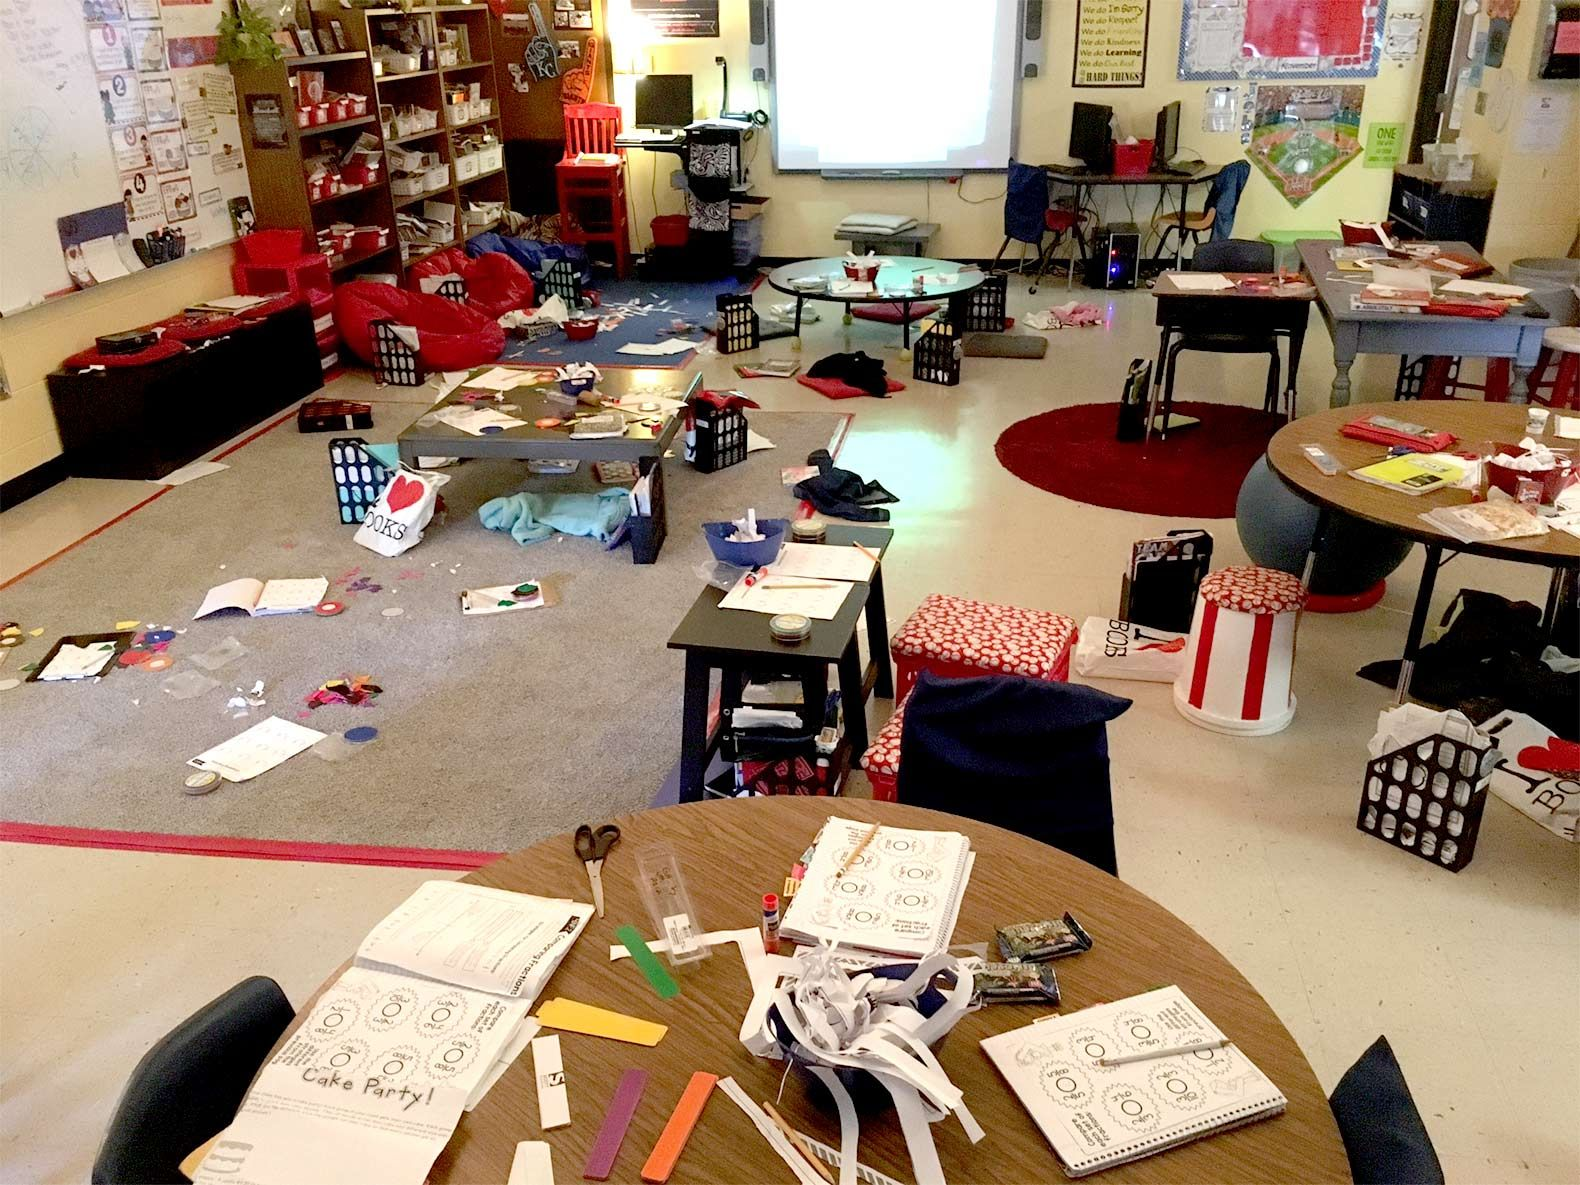 A flexible classroom can get messy, but teachers say the benefits outweigh that downside.